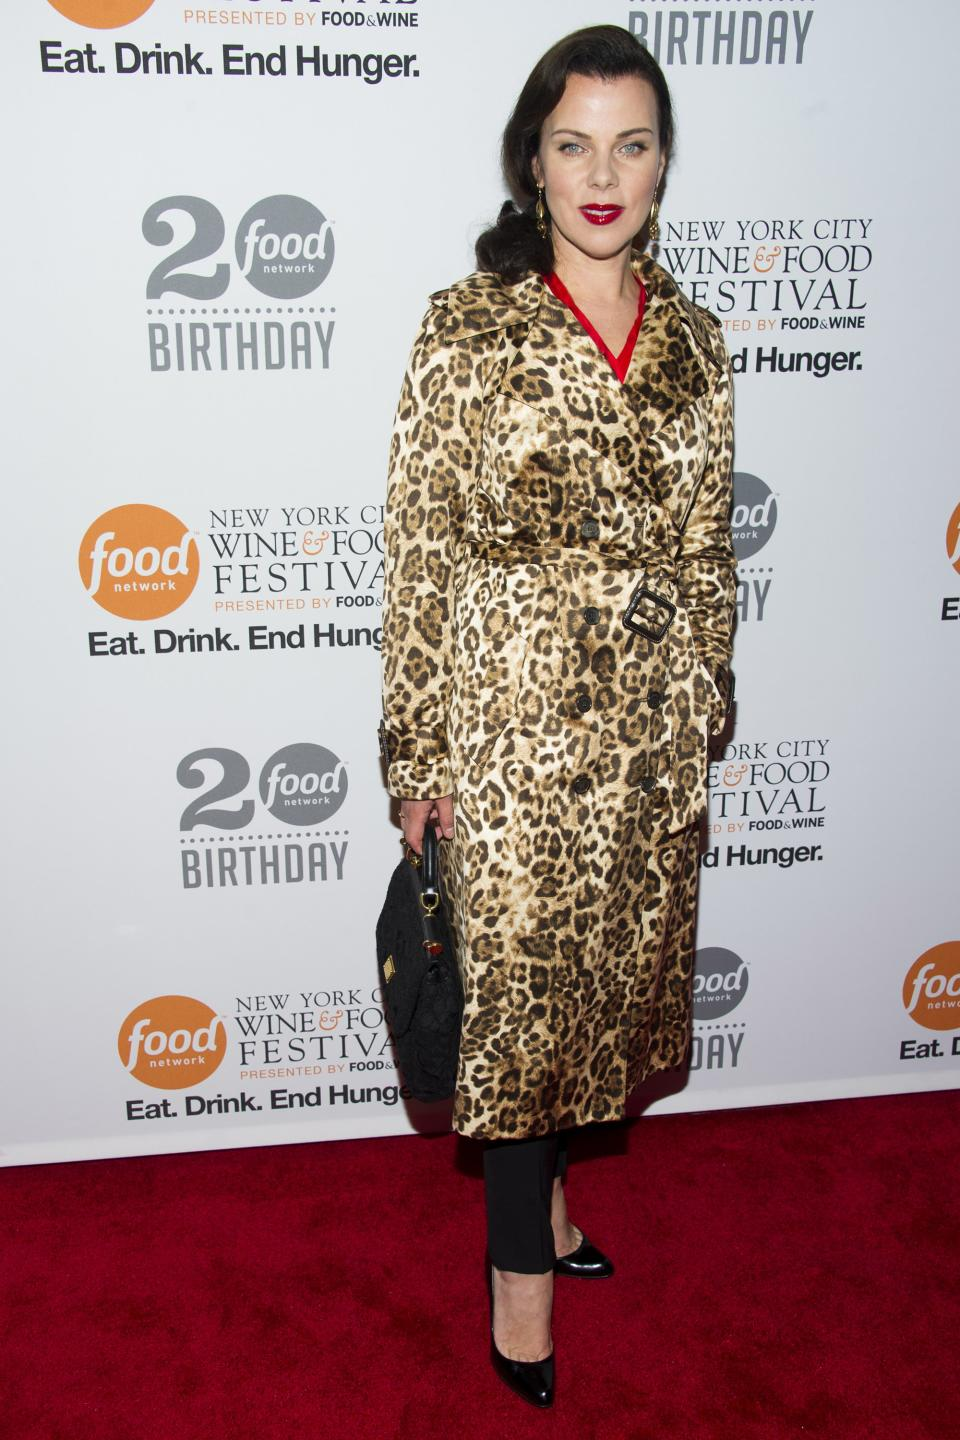 Debi Mazar attends the Food Network's 20th birthday party on Thursday, Oct. 17, 2013, in New York. (Photo by Charles Sykes/Invision/AP)